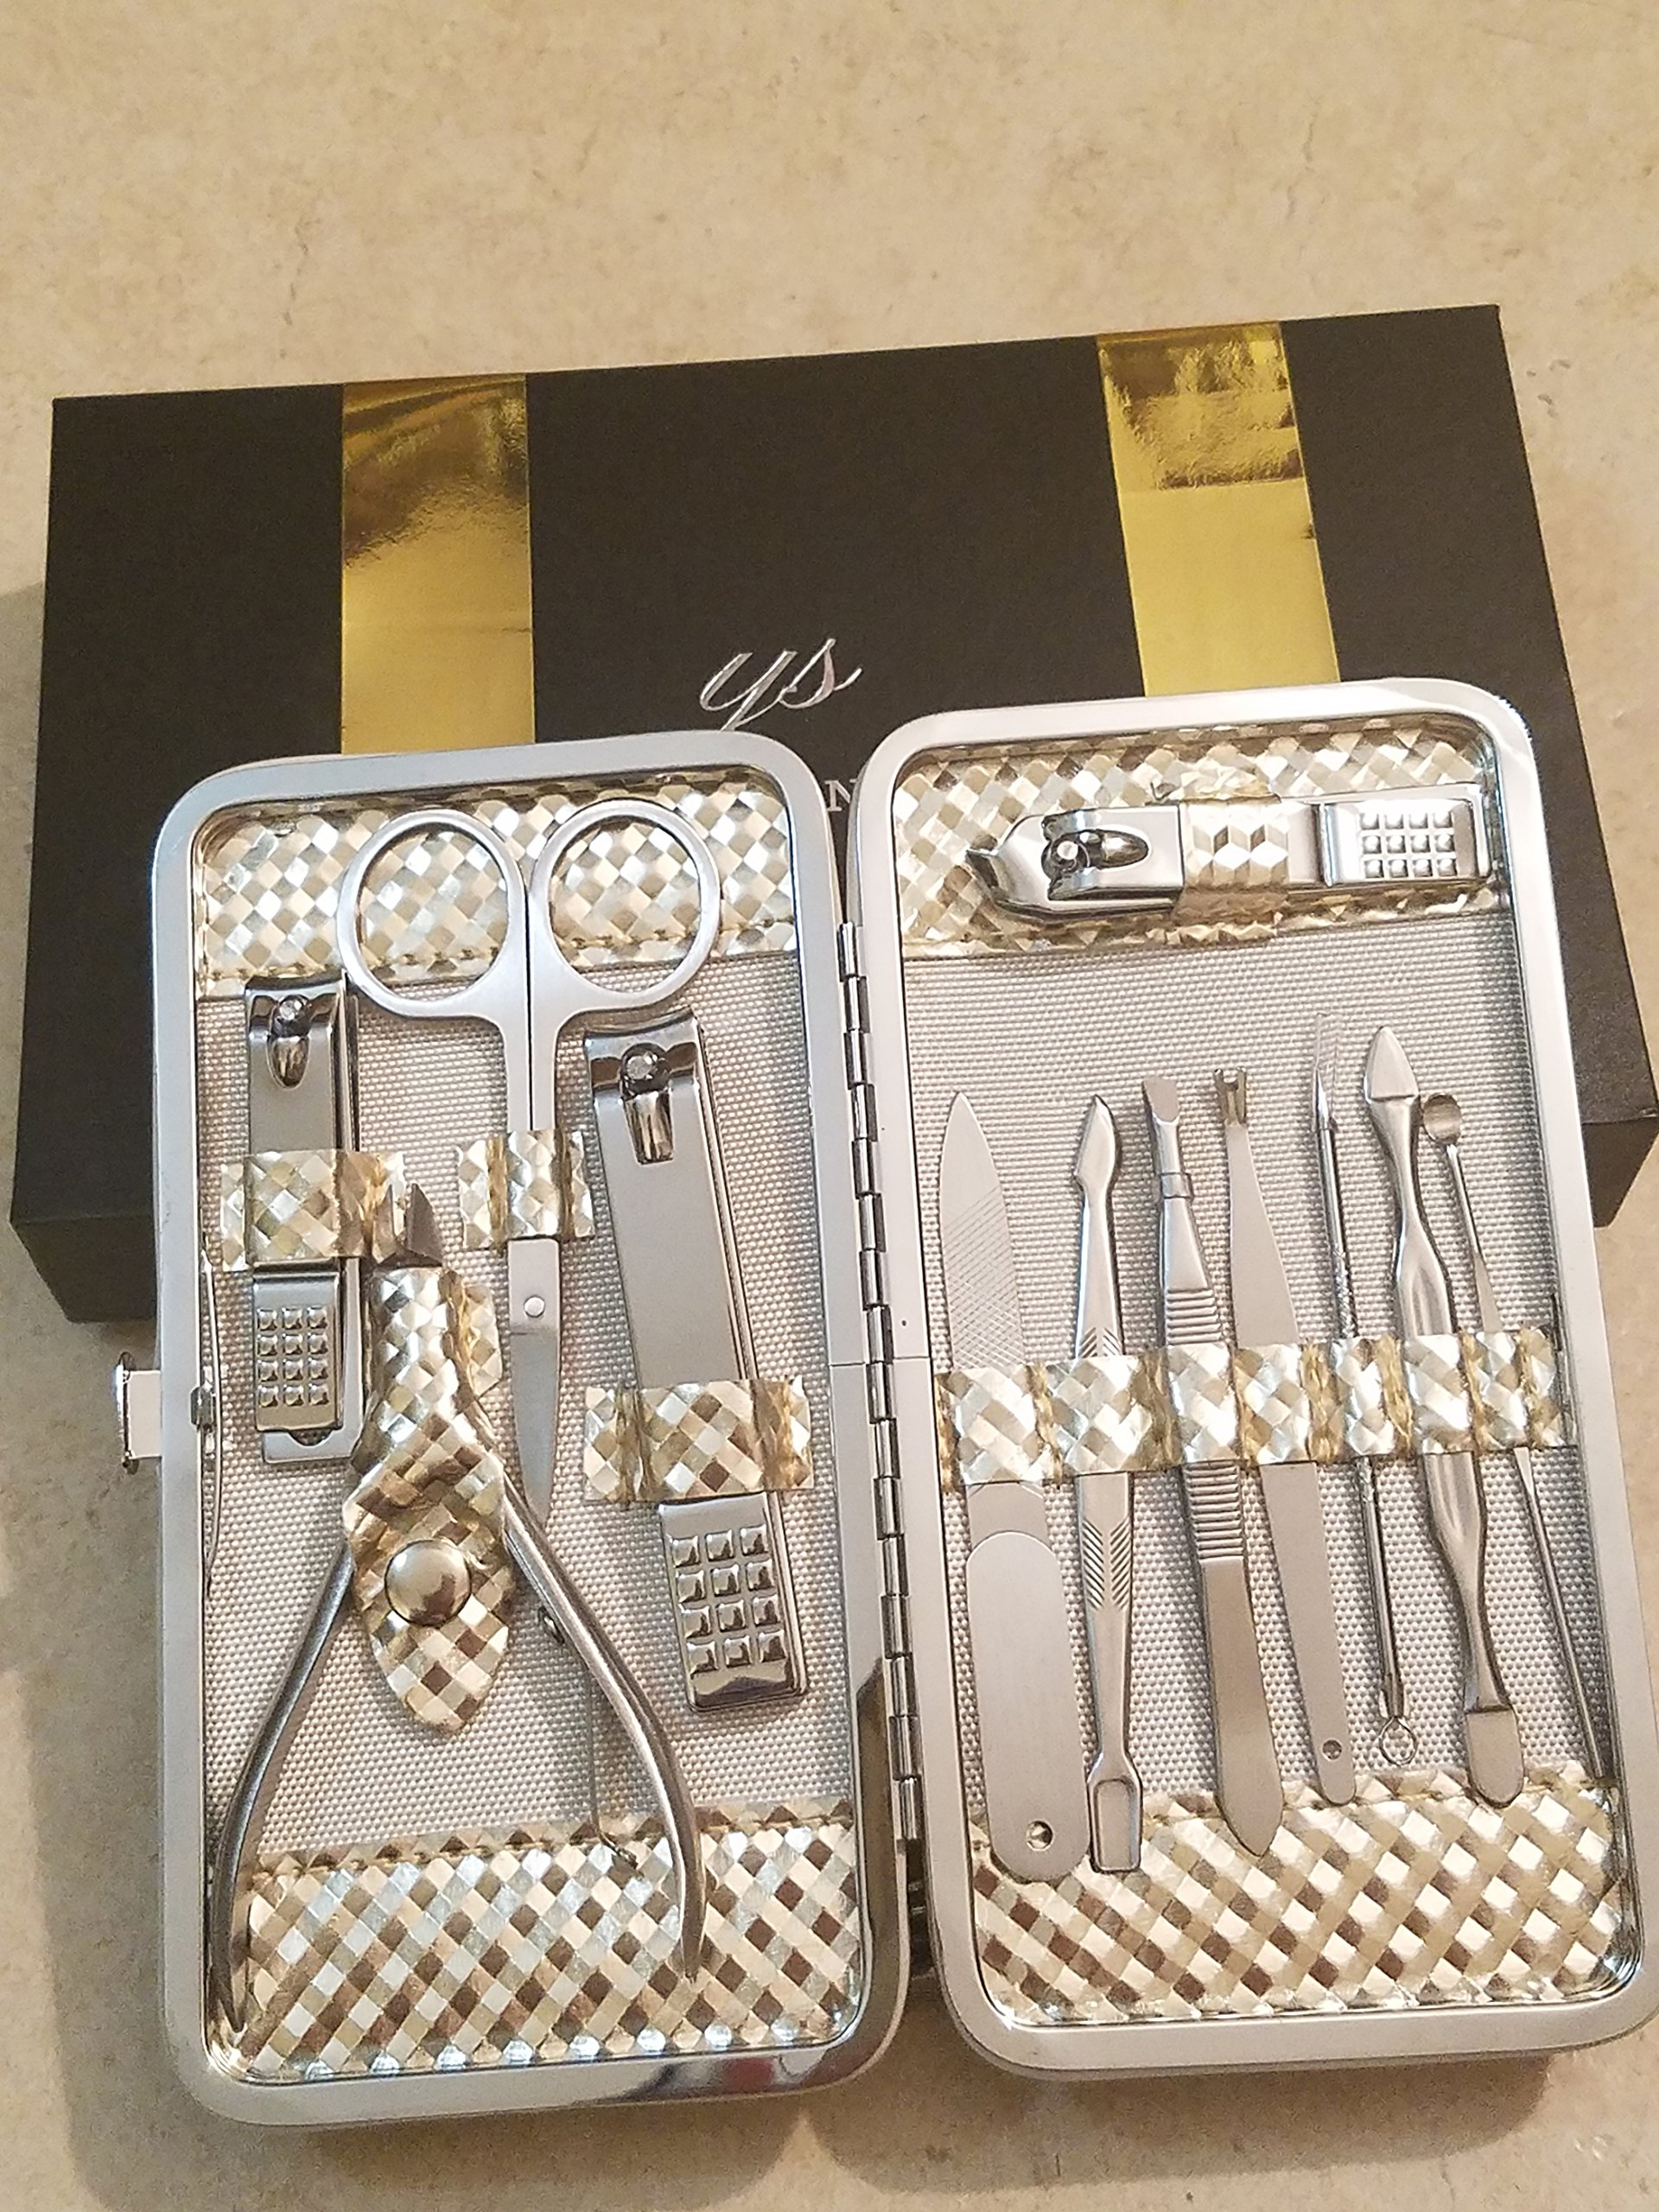 Amazing Professional Manicure Travel Set for men and women. 12 pieces kit of Stainless steel manicure & Pedicure clipping and trimming tools in an attractive Beautiful gold metallic case.